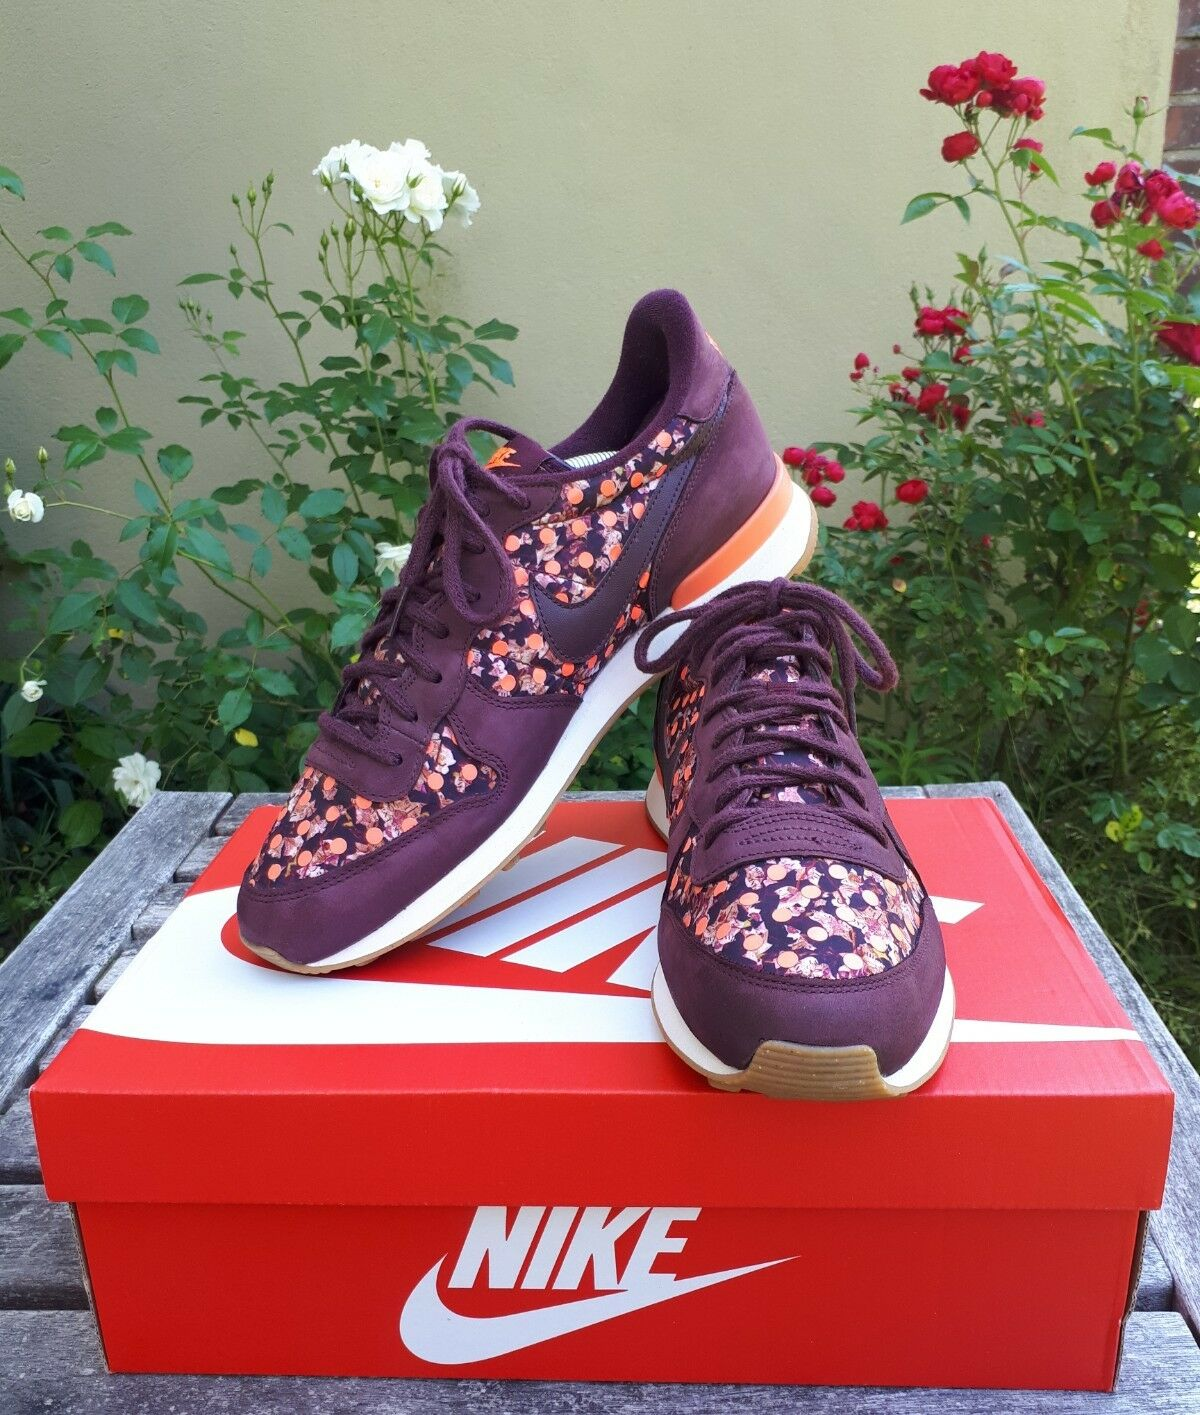 Nike Internationalist x Liberty of London WMNS US 10,5 Vortex Epic Afew Patta